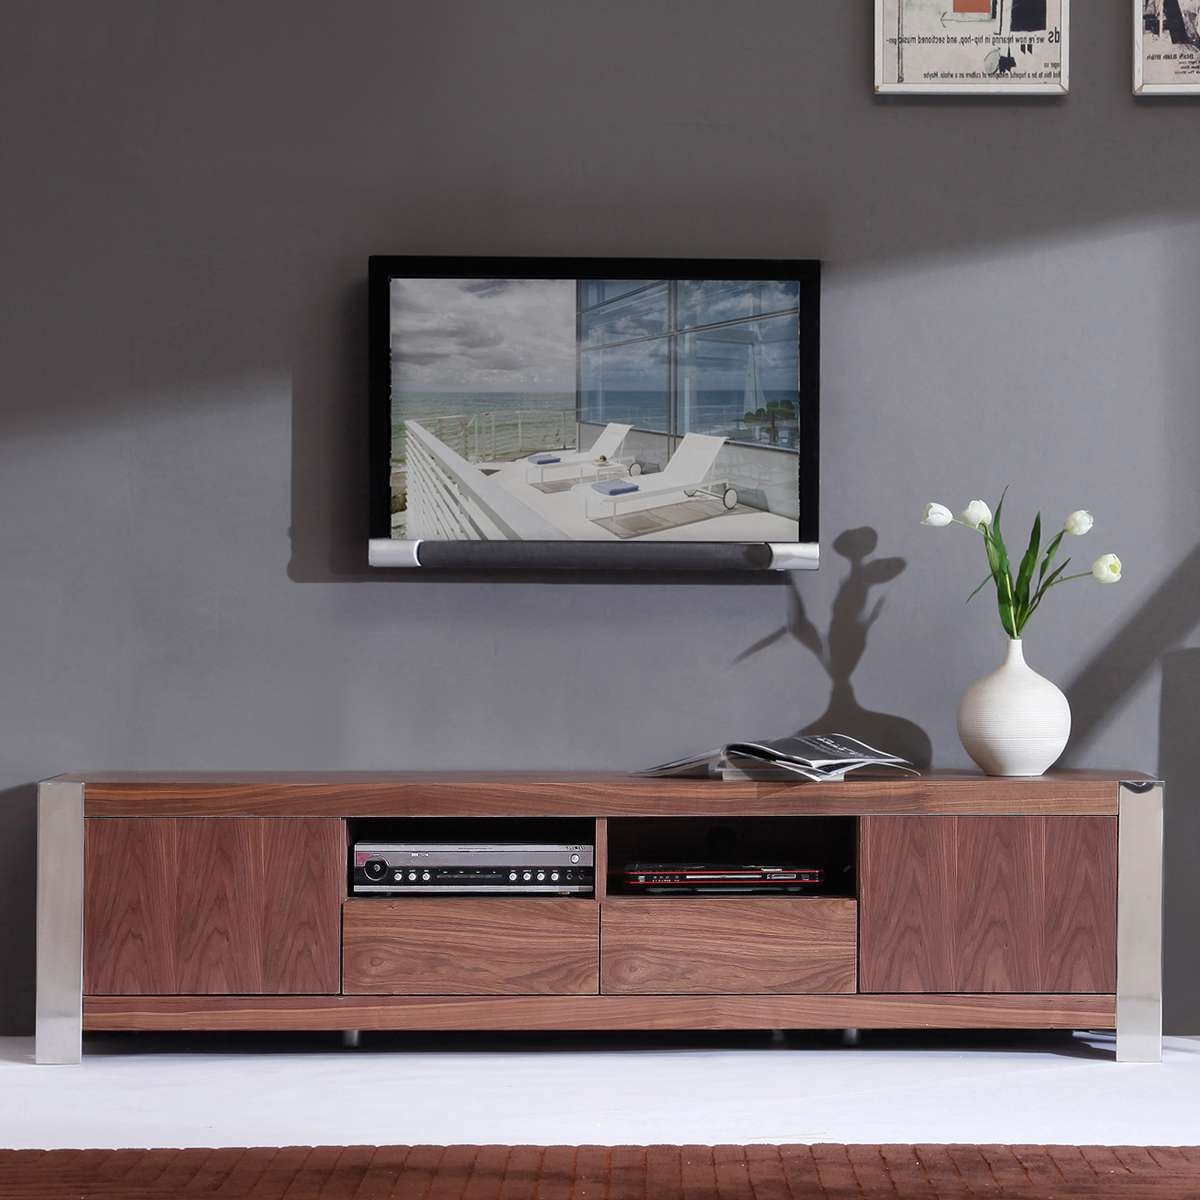 B Modern Minimalist Design Contemporary Tv Stands & Furniture At With Regard To B Modern Tv Stands (View 11 of 15)